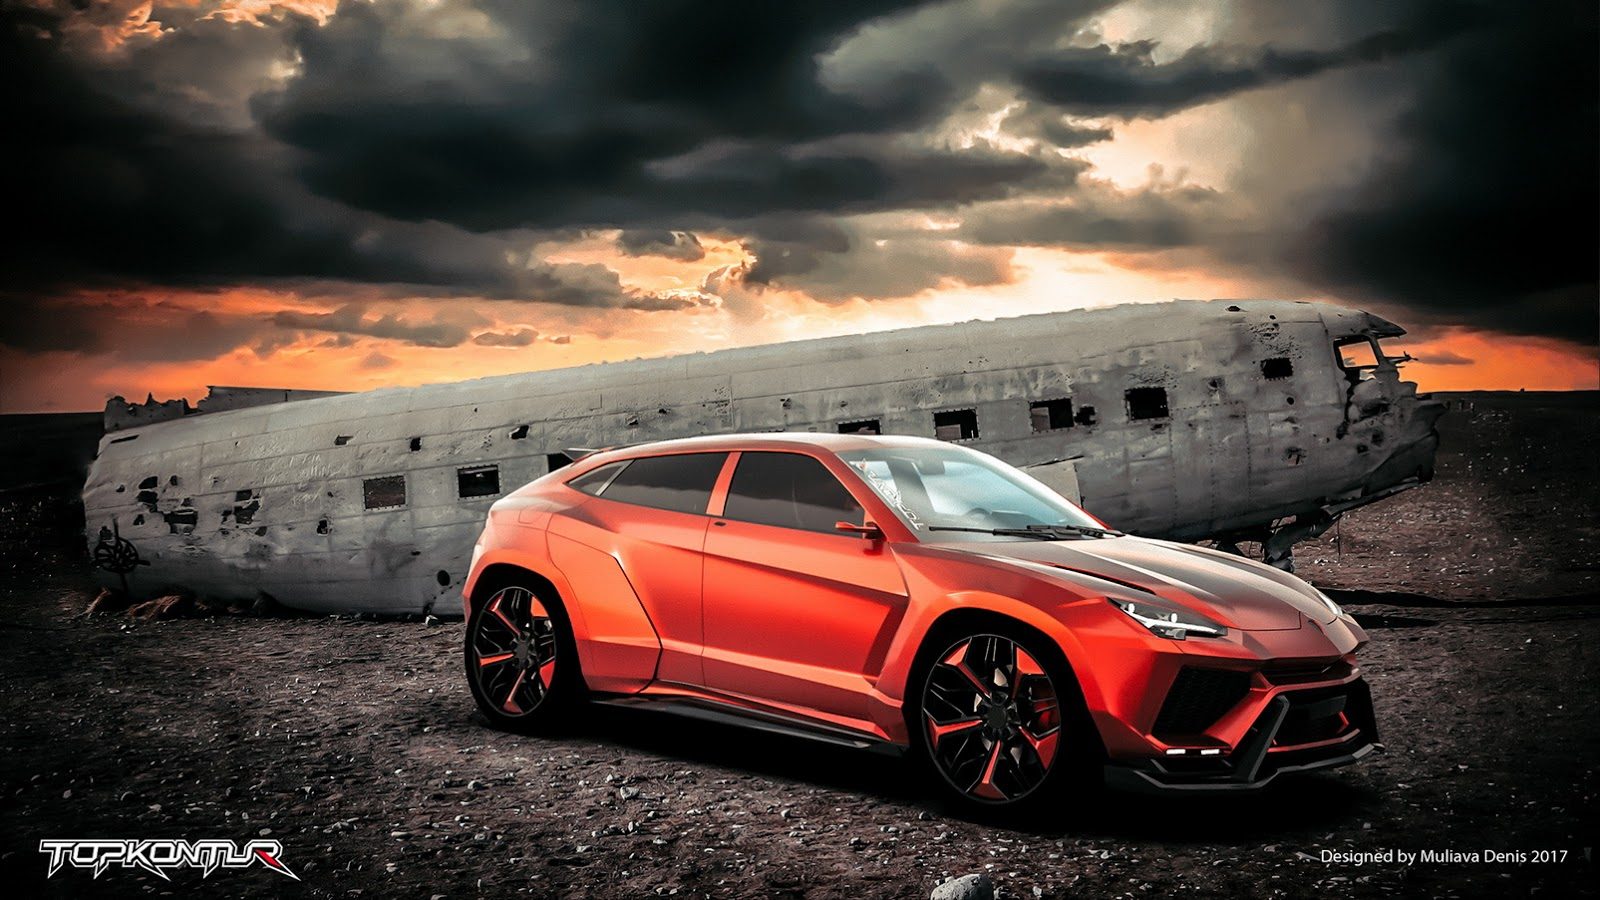 Lamborghini Aventador Cars Wallpapers Lamborghini Urus Not Even Revealed But Gets Tuning Package